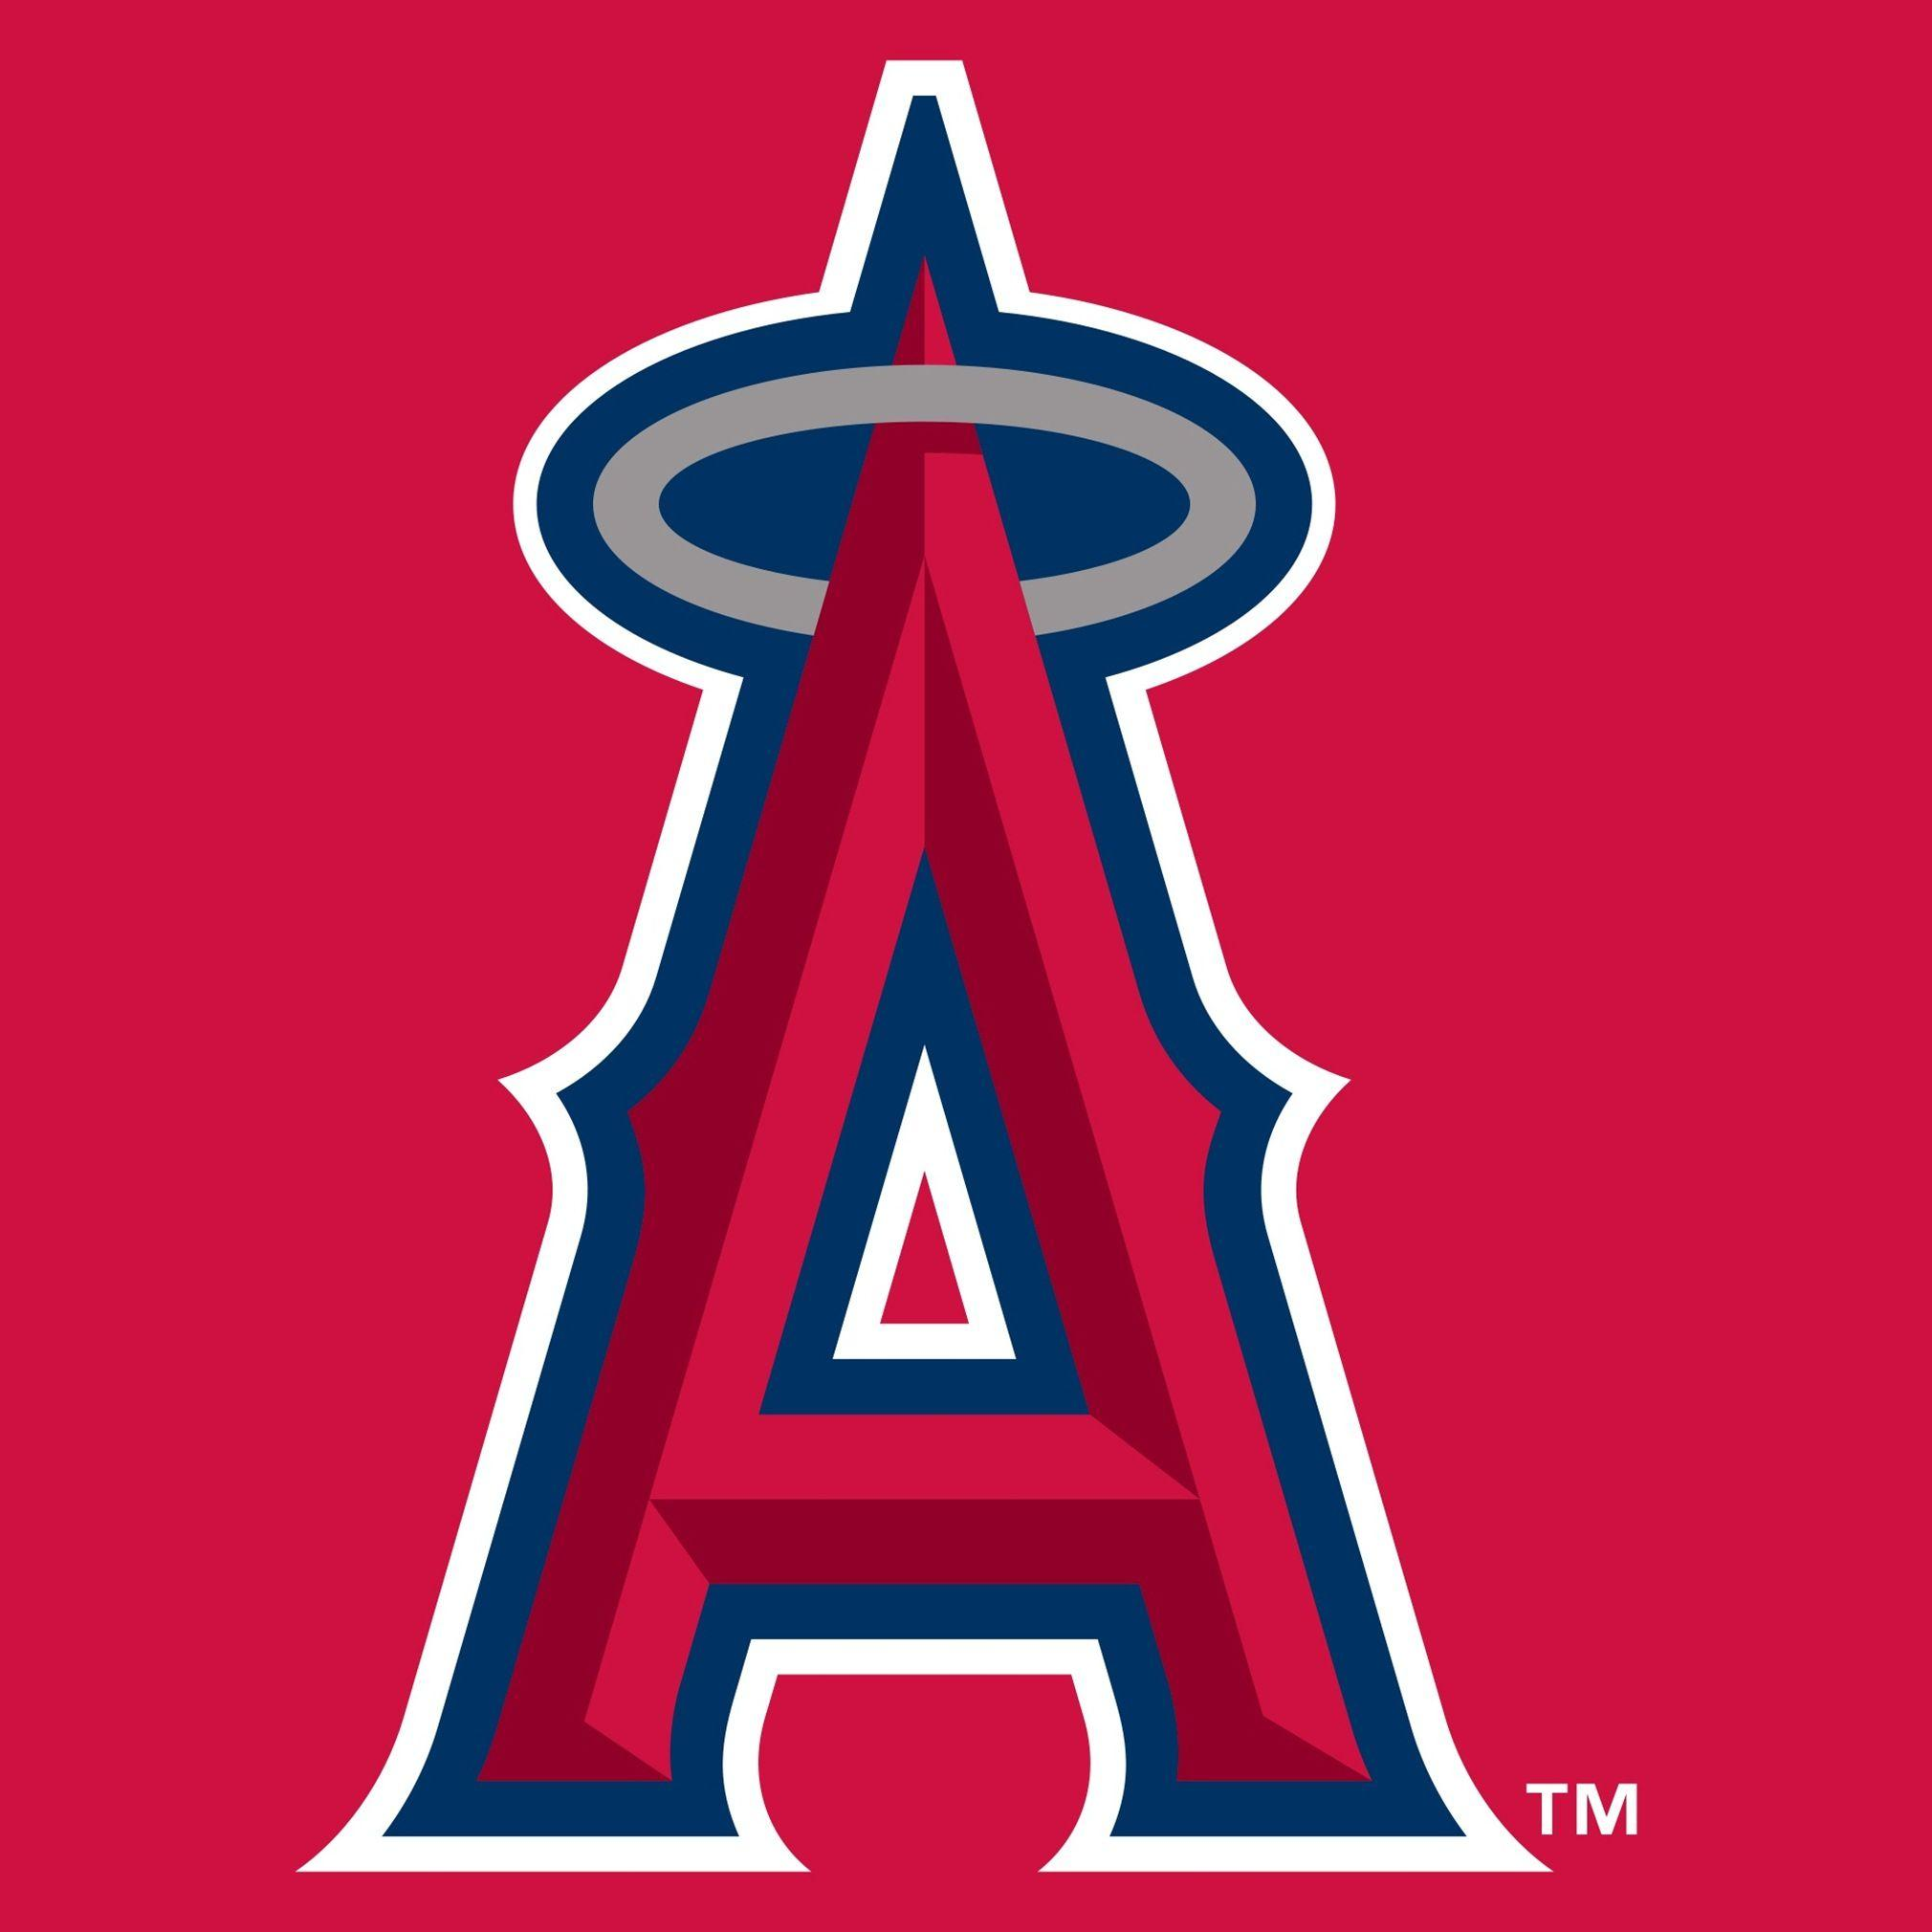 Los Angeles Angels of Anaheim wallpapers | Los Angeles Angels of ...